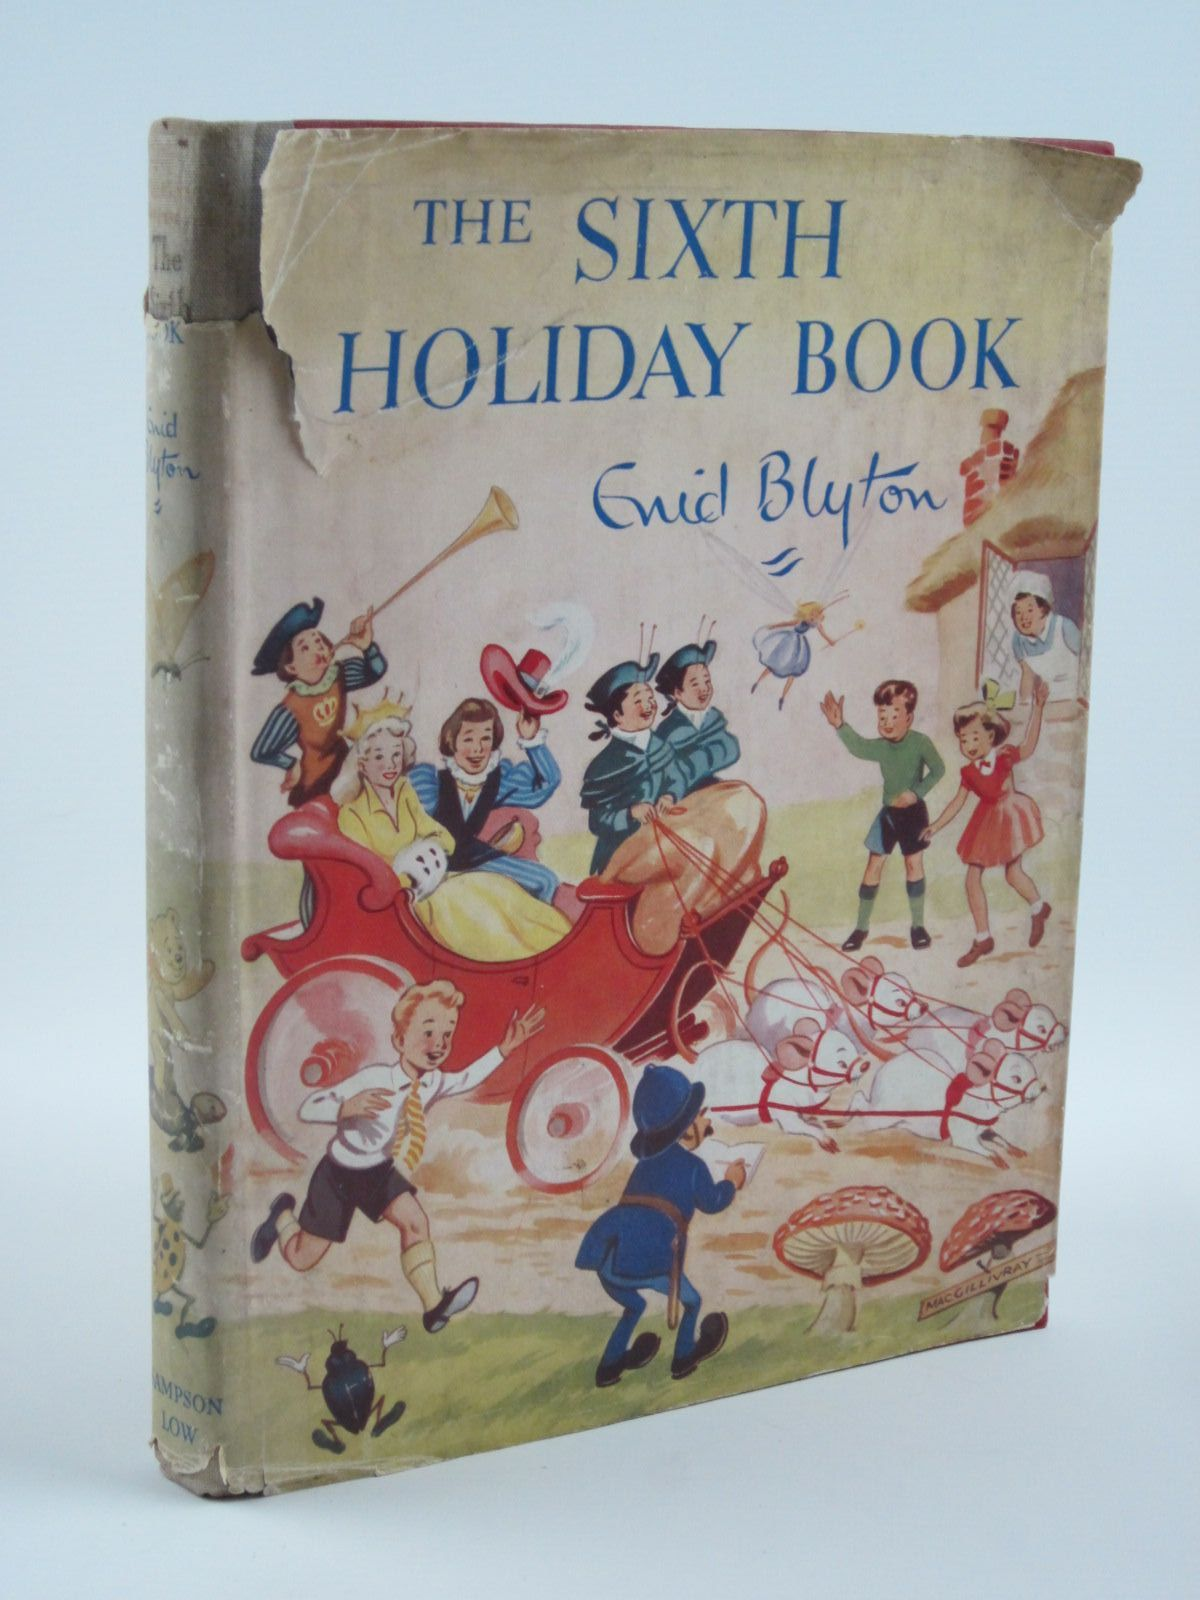 Photo of THE SIXTH HOLIDAY BOOK written by Blyton, Enid illustrated by Steed, Cicely MacGillivray, Robert McGavin, Hilda Sheppard, Raymond et al.,  published by Sampson Low, Marston & Co. Ltd. (STOCK CODE: 1501297)  for sale by Stella & Rose's Books